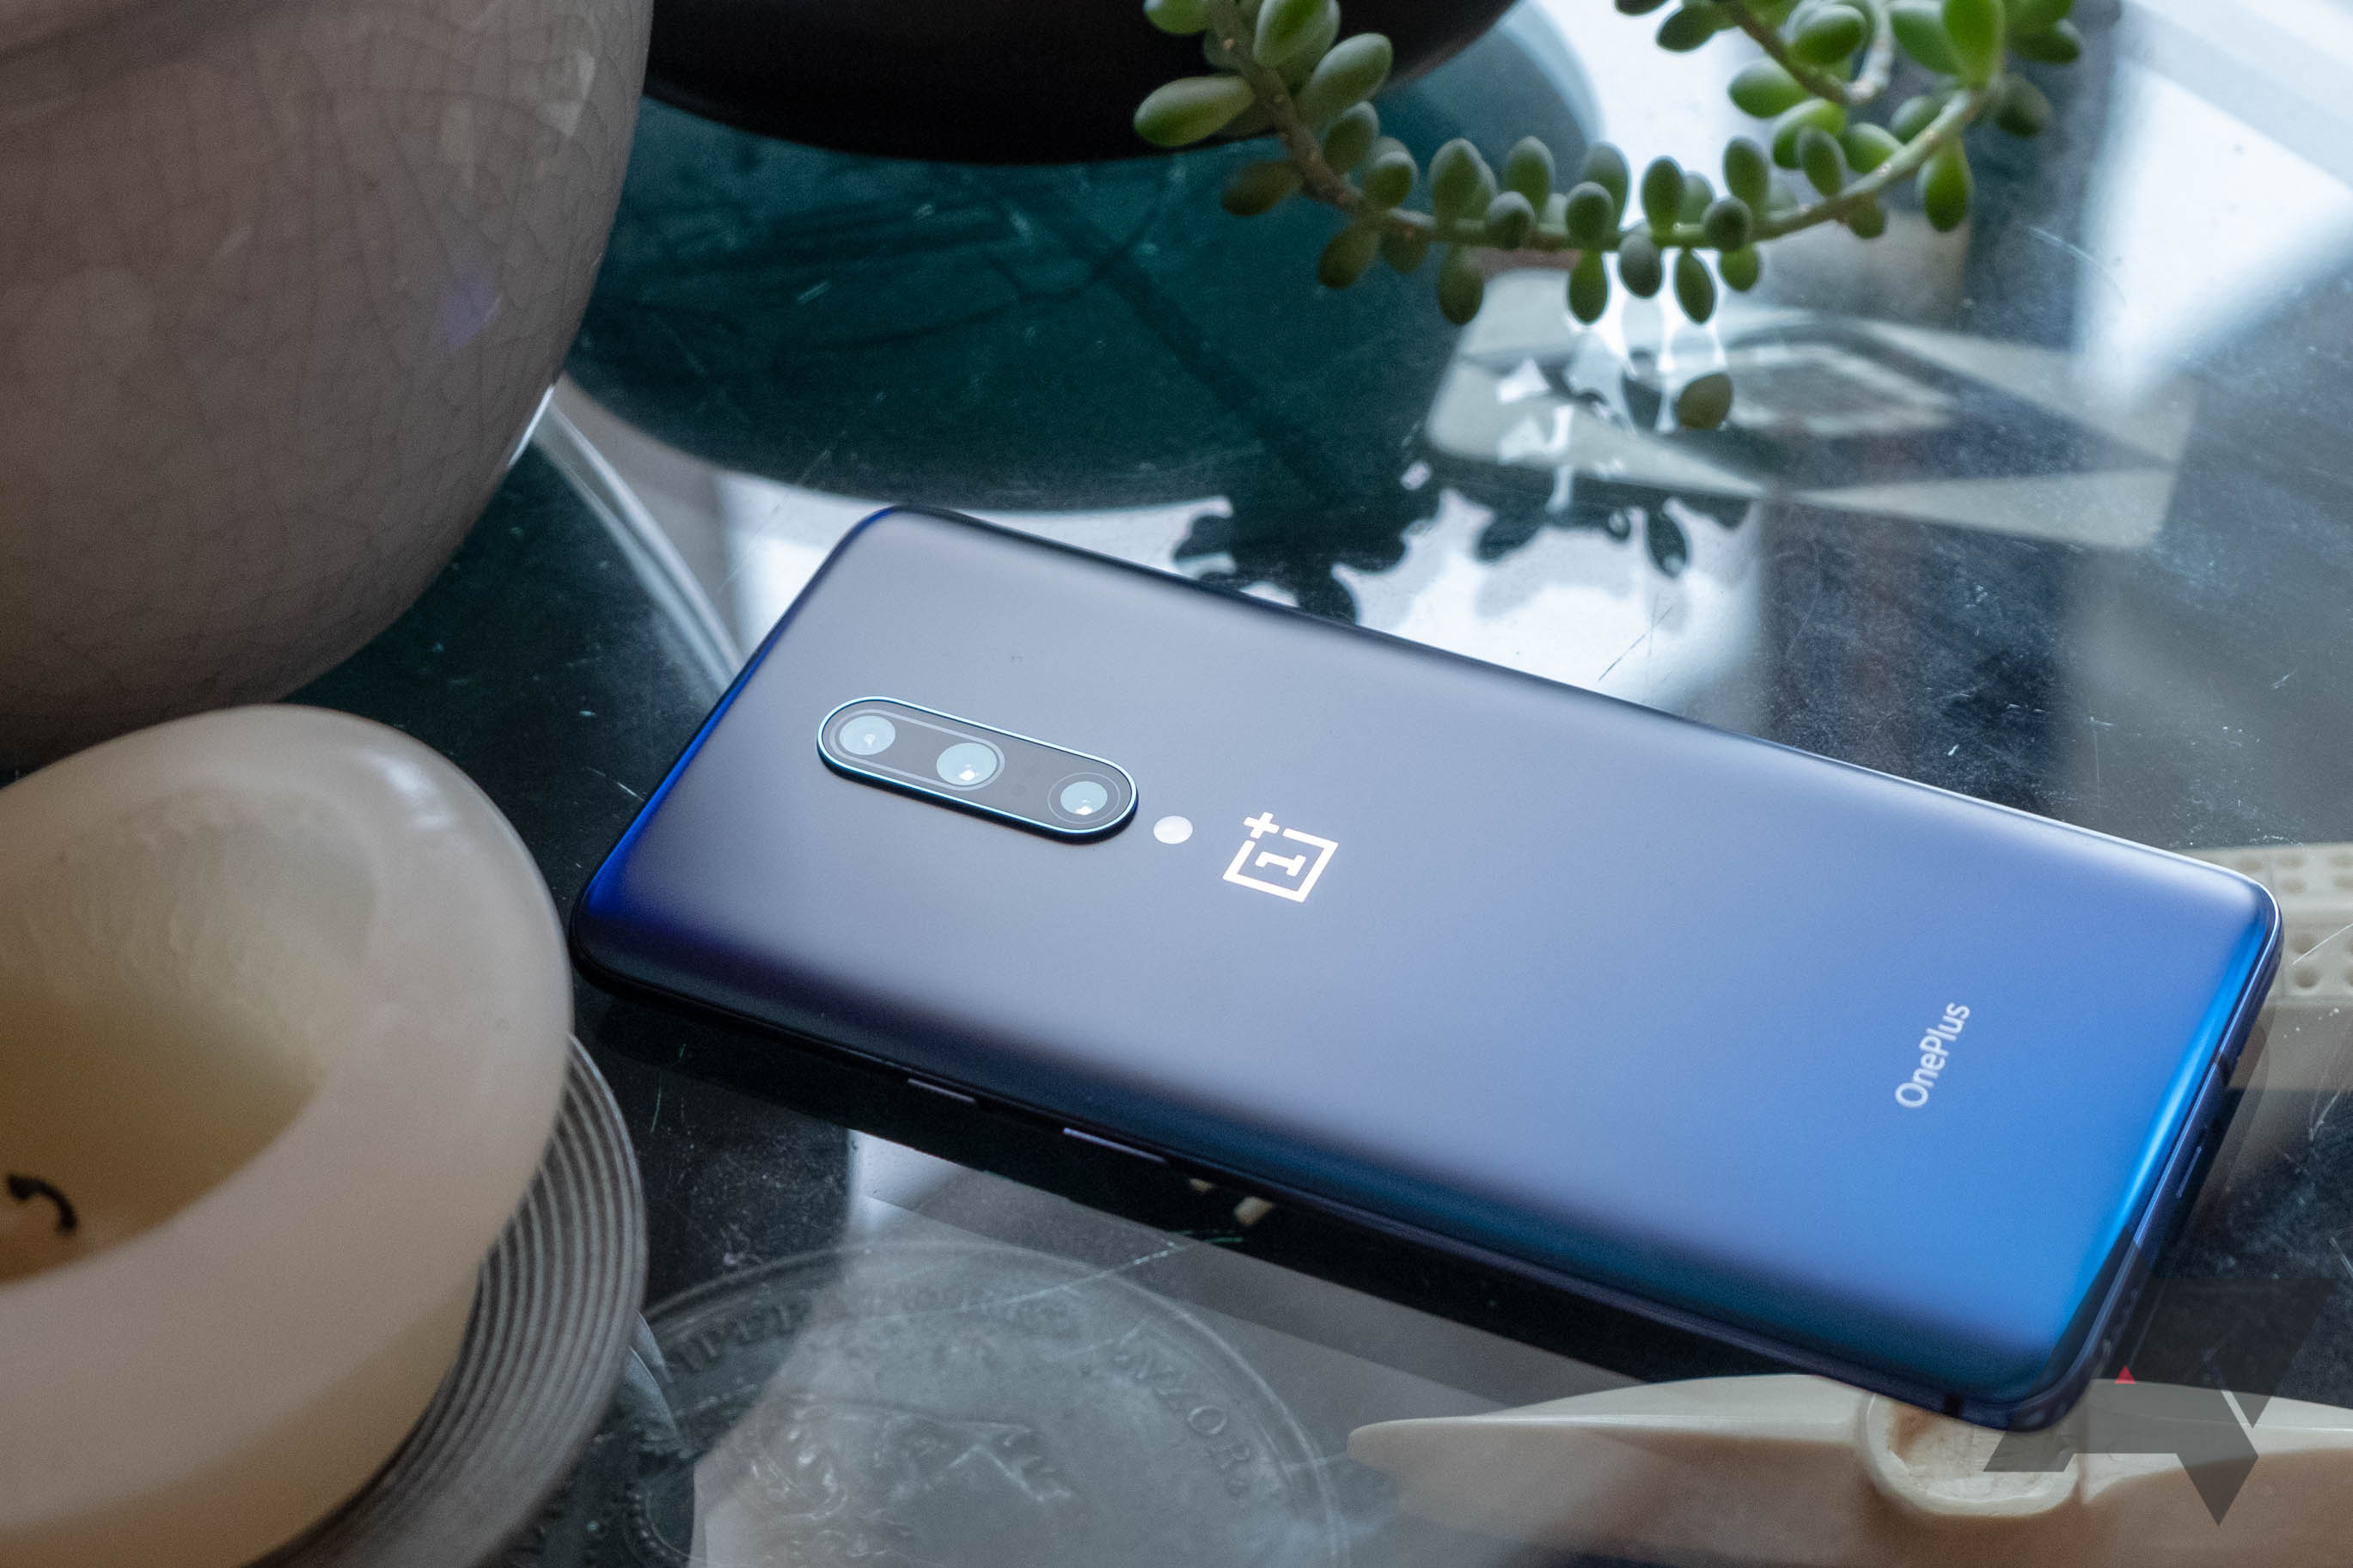 [Update: Stable update too] Android 10 Open Beta 3 arrives on OnePlus 7 and 7 Pro, lots of bug fixes in tow